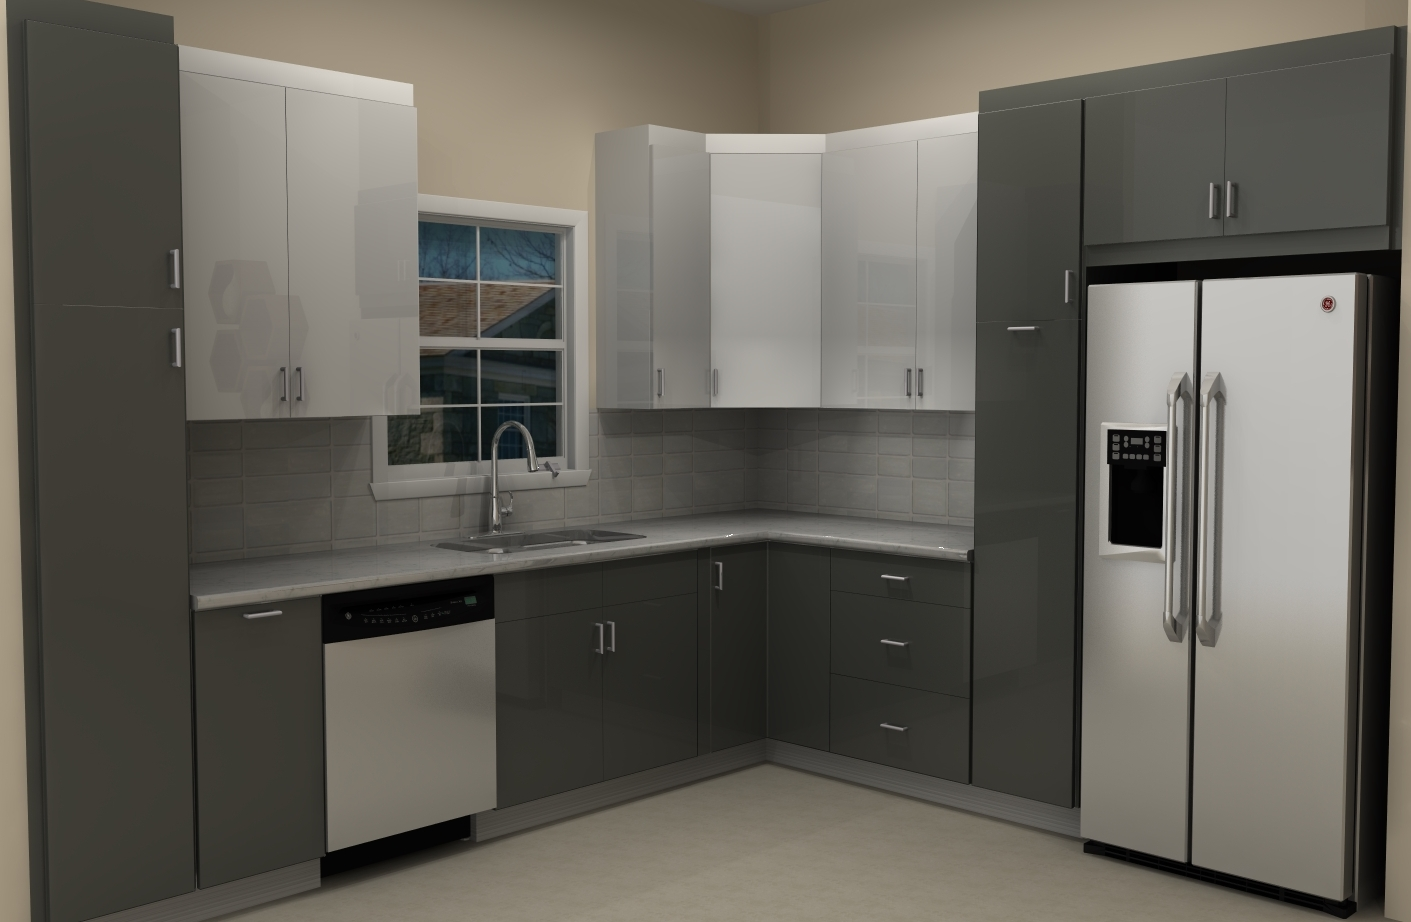 New 2013 ikea kitchen cabinets for New kitchen designs 2013